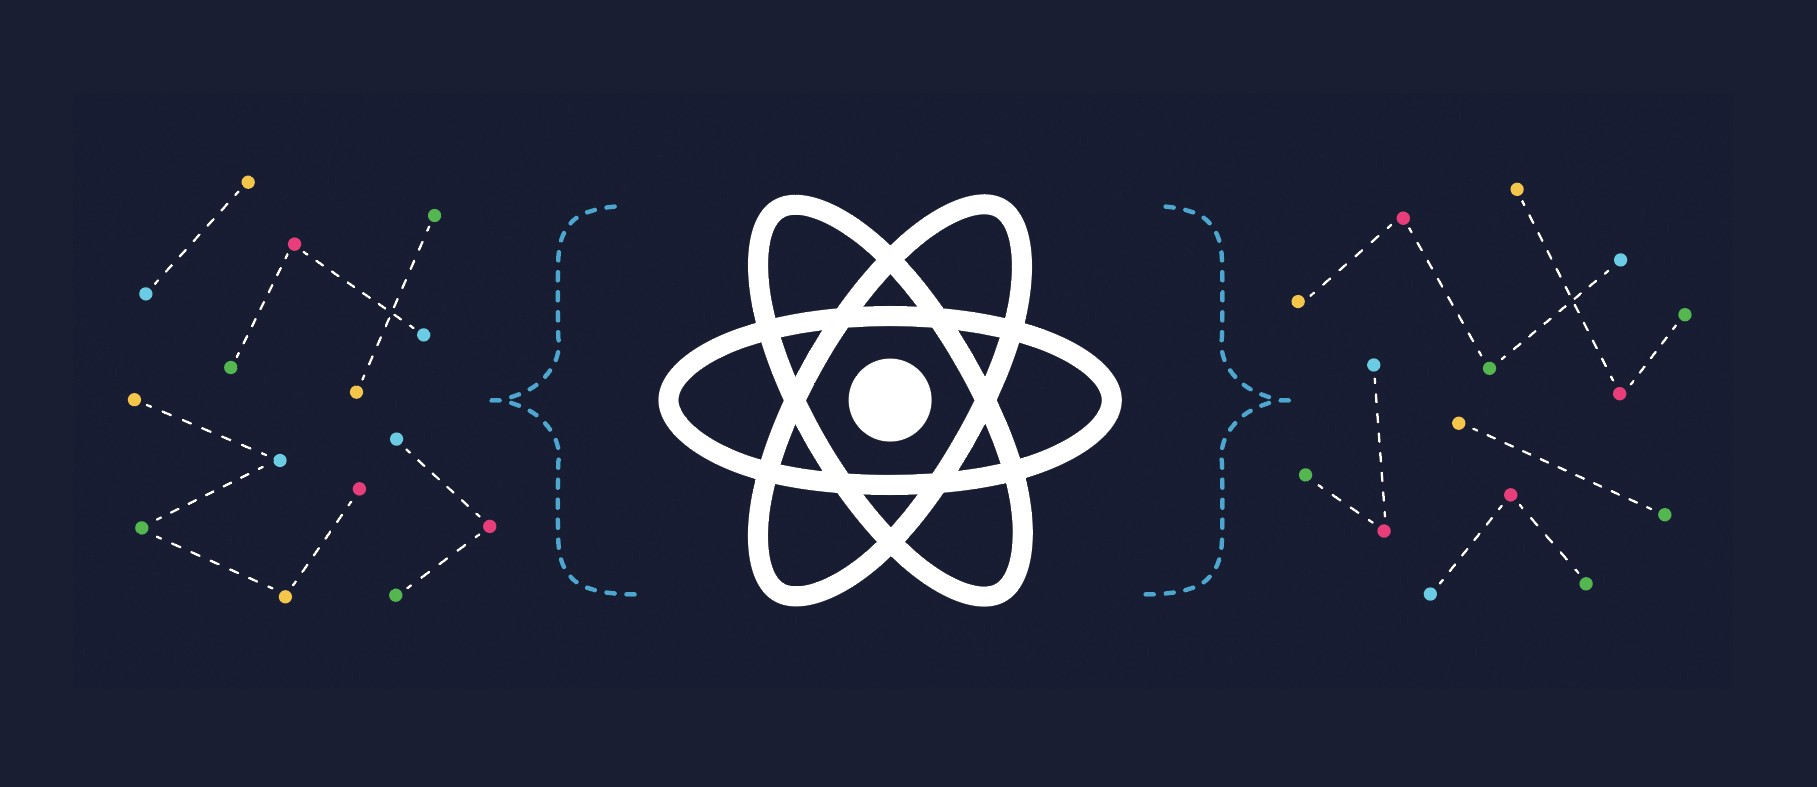 Must-Have Weapons in Your React Armory